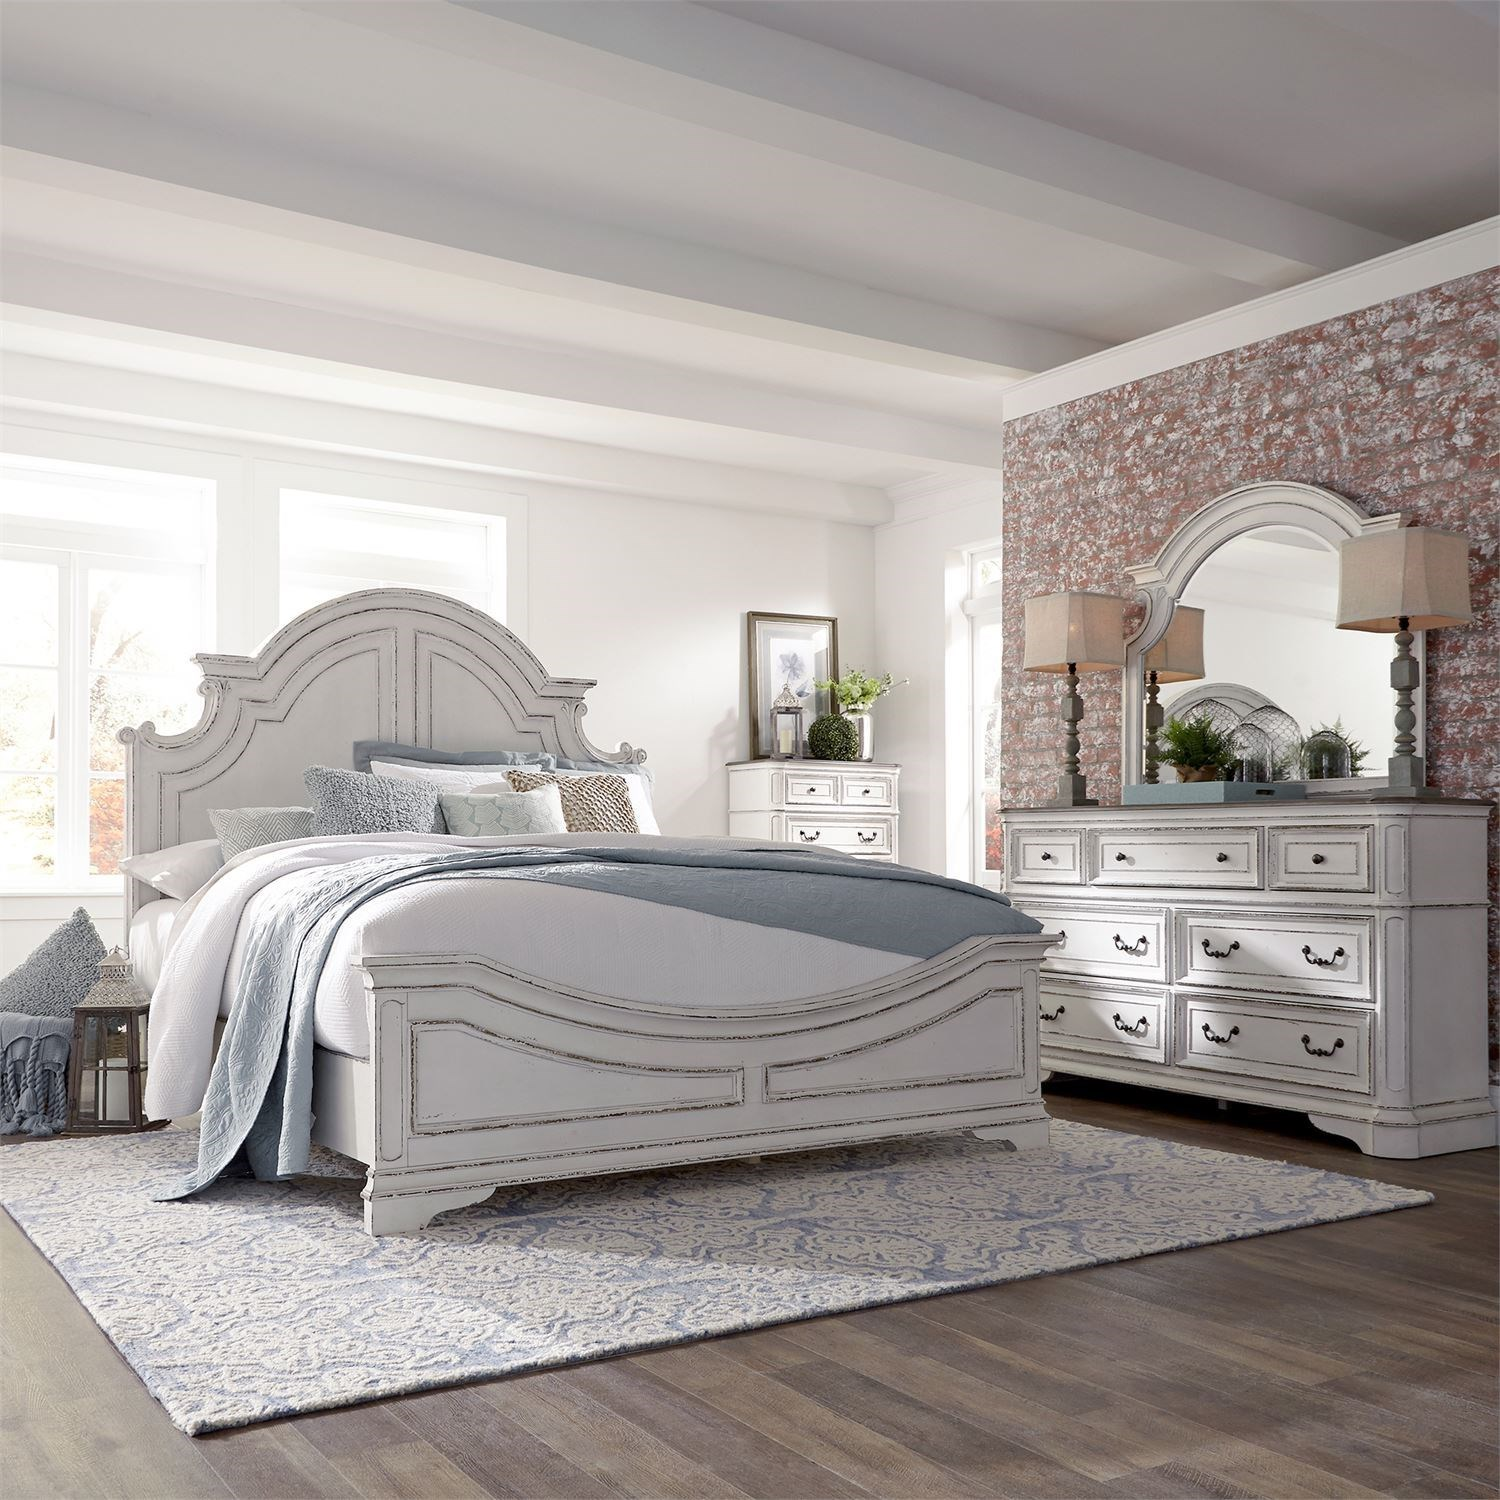 Magnolia Manor Queen Bedroom Group by Liberty Furniture at Novello Home Furnishings